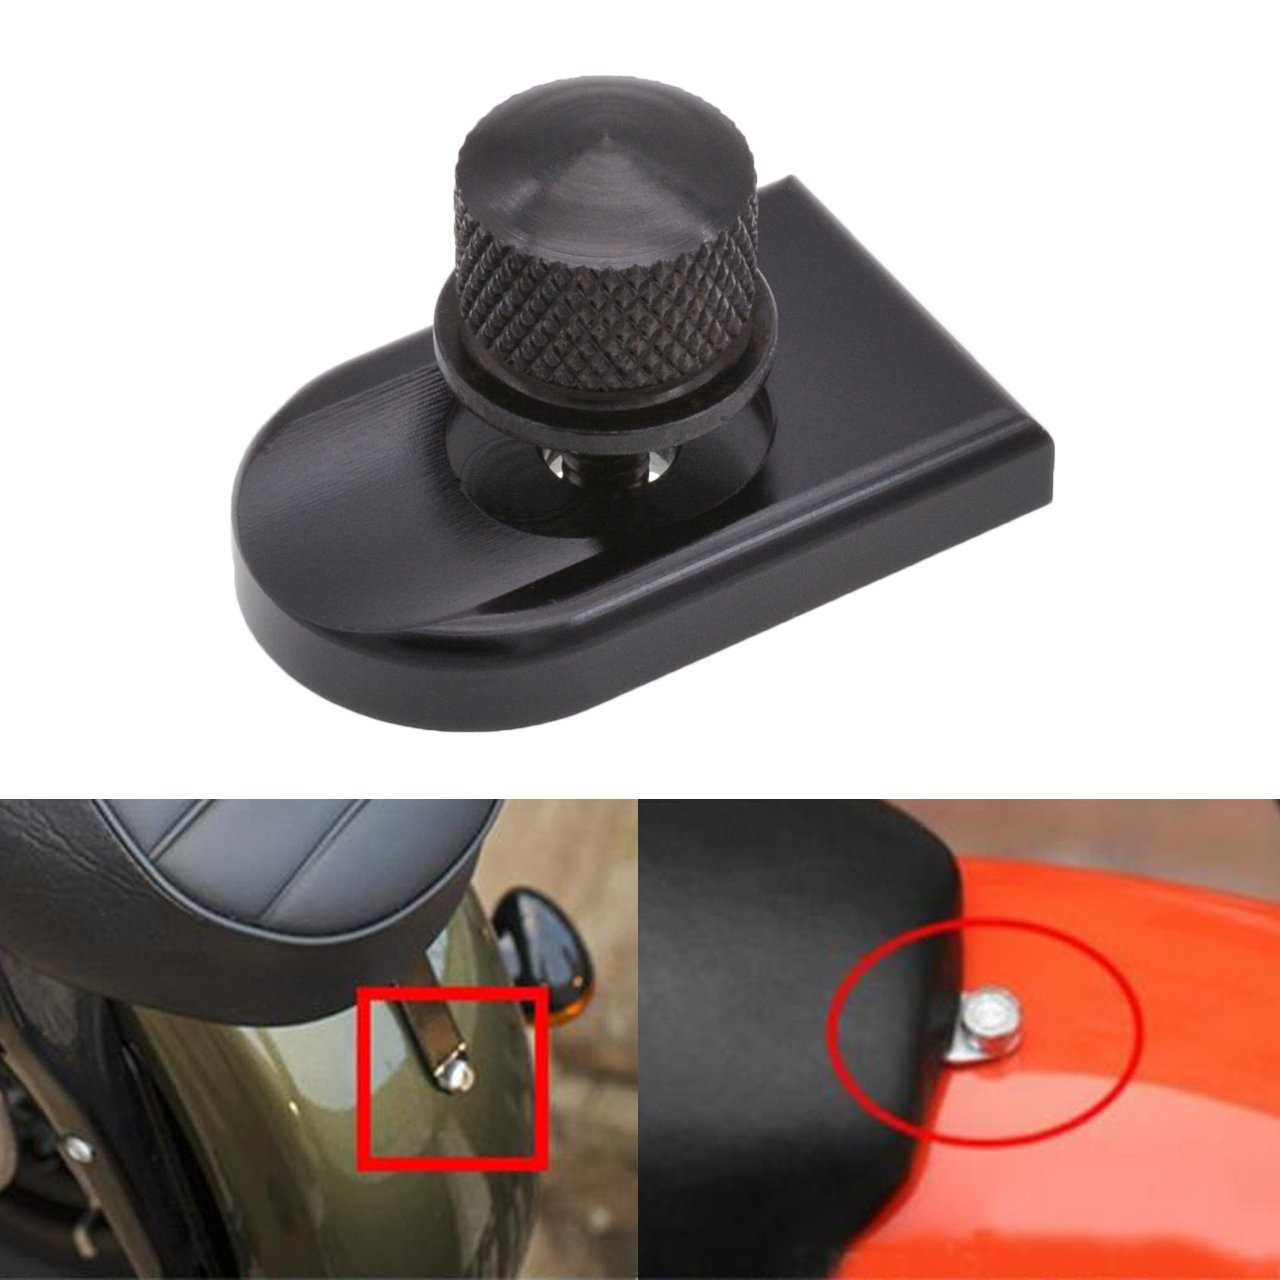 KaTur Round/Knurled Anodized Black Billet Aluminum Mount Seat Bolt Screw Thumbscrew For Harley Davidson 1996-2015 Dyna Street Bob